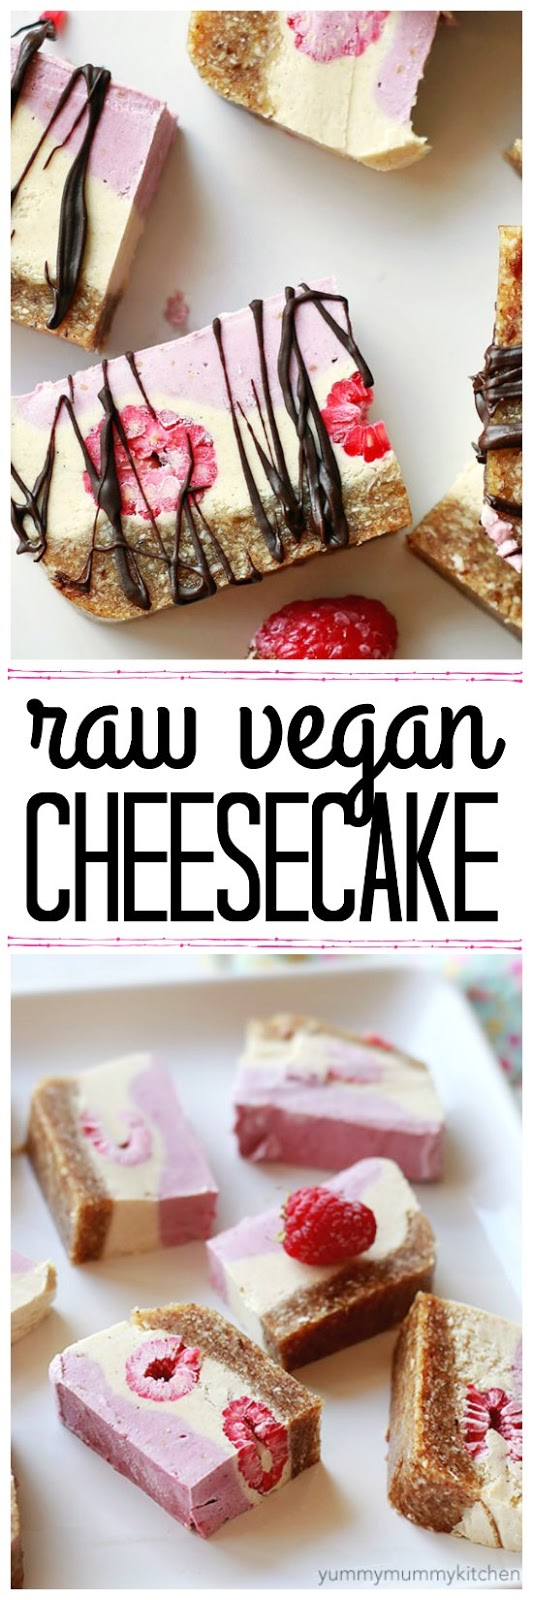 Beautiful raw vegan raspberry cheesecake sliced drizzled with chocolate. I love this natural cashew based cheesecake with date and nut crust. It makes such a delicious vegan treat.